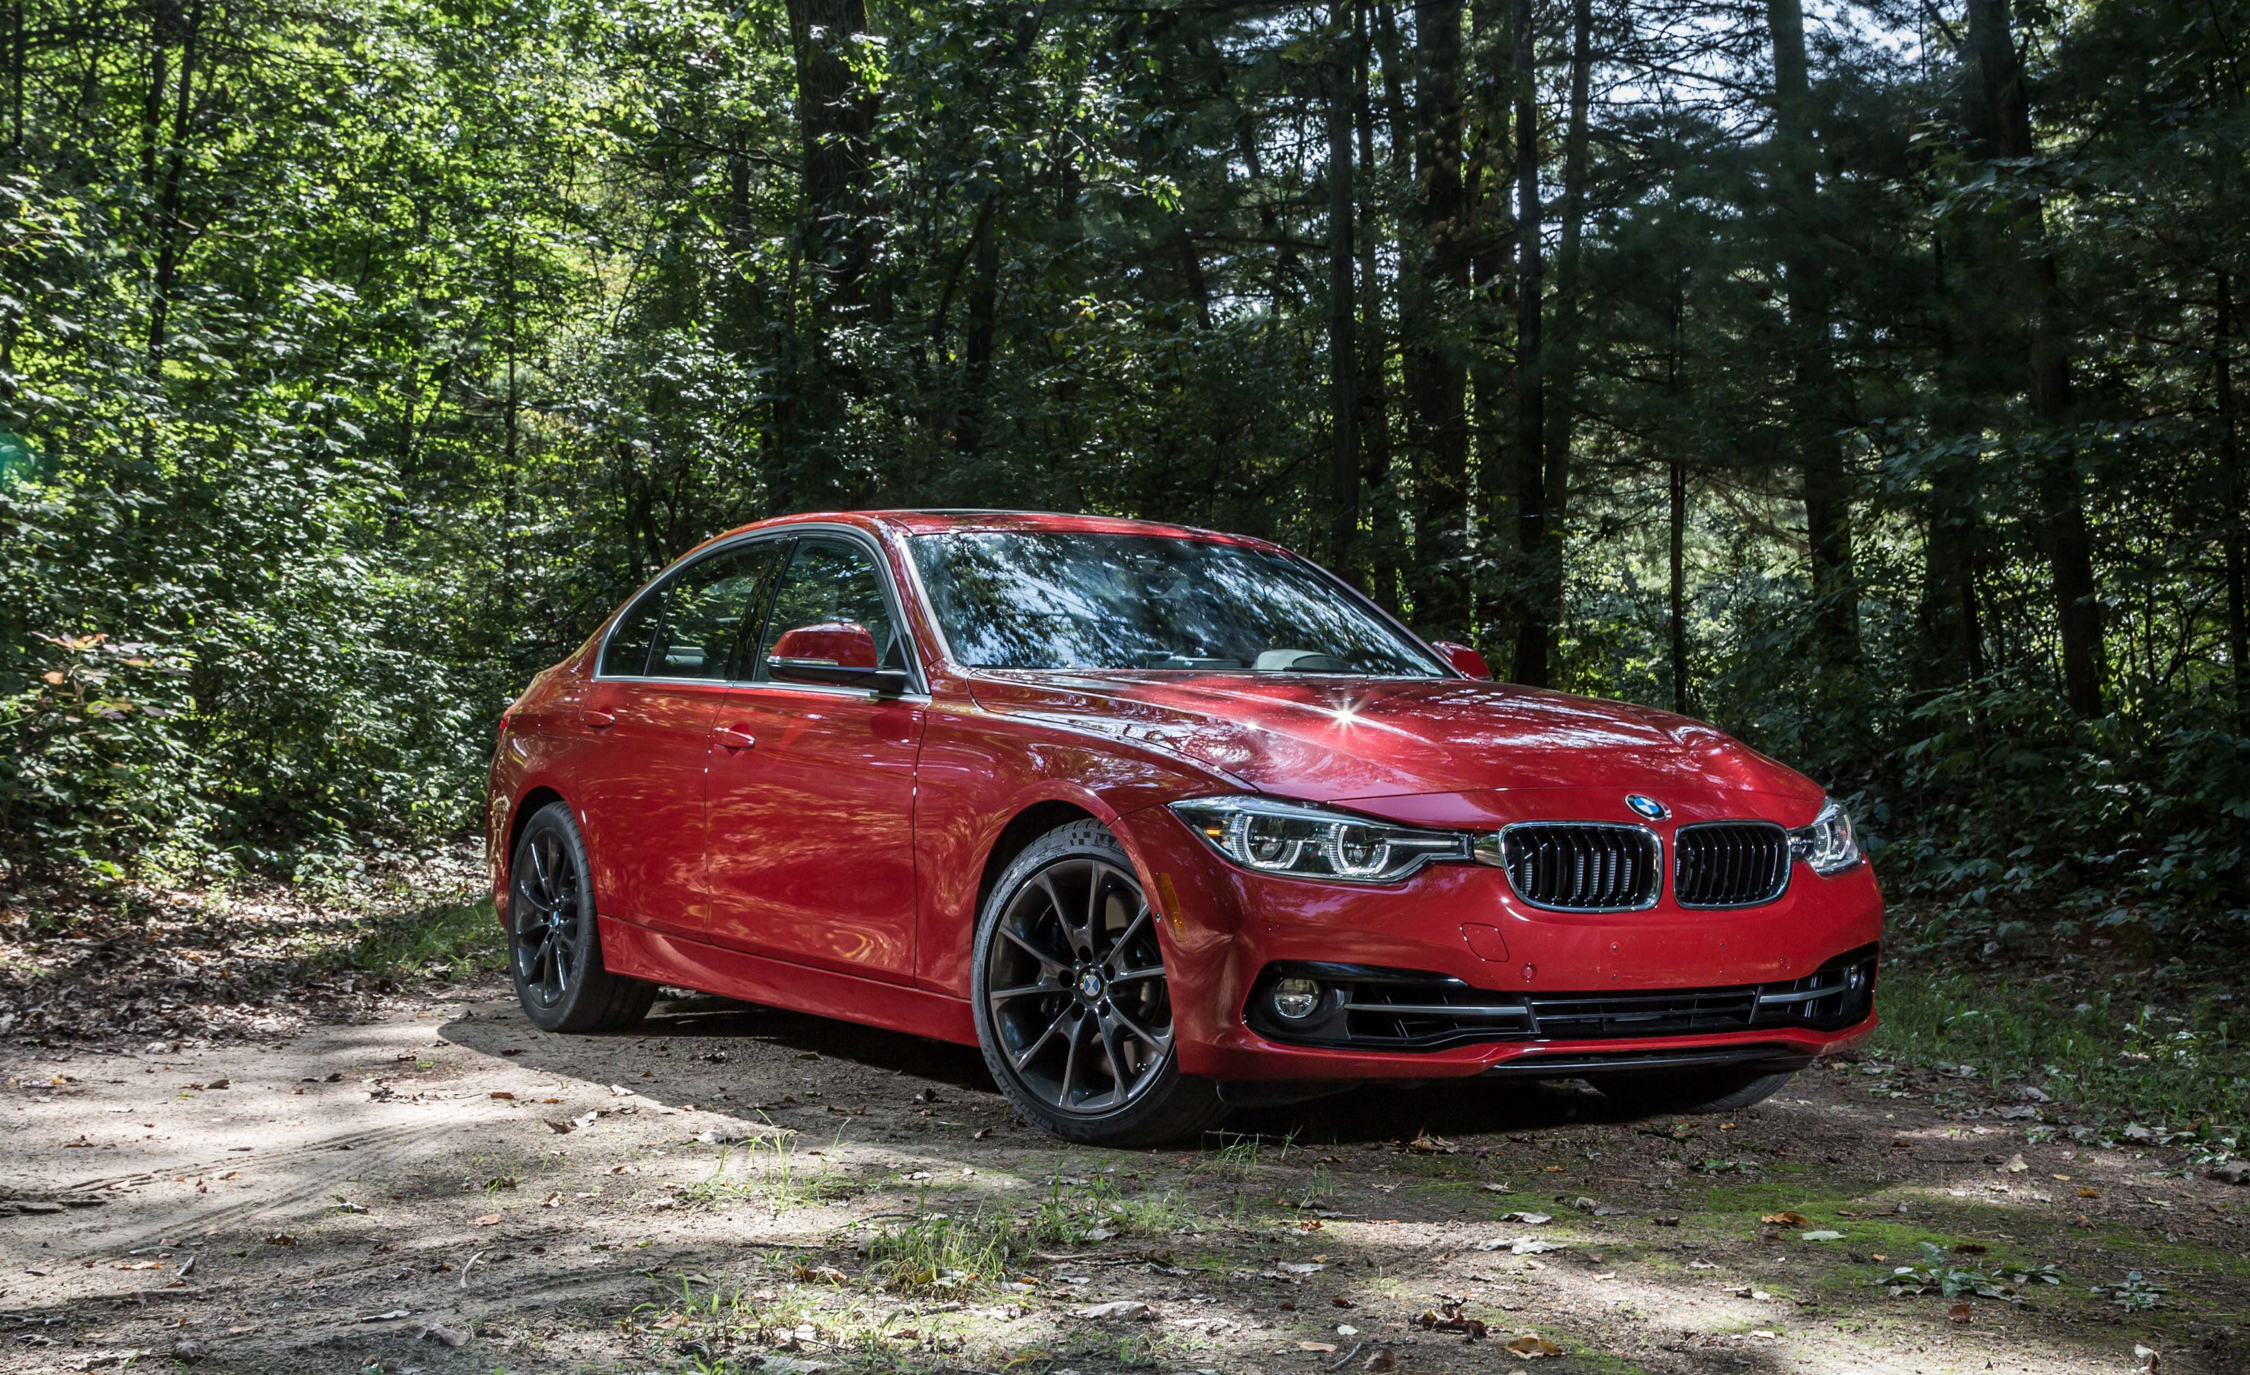 2016 BMW 340i Pictures Gallery (14 Images)